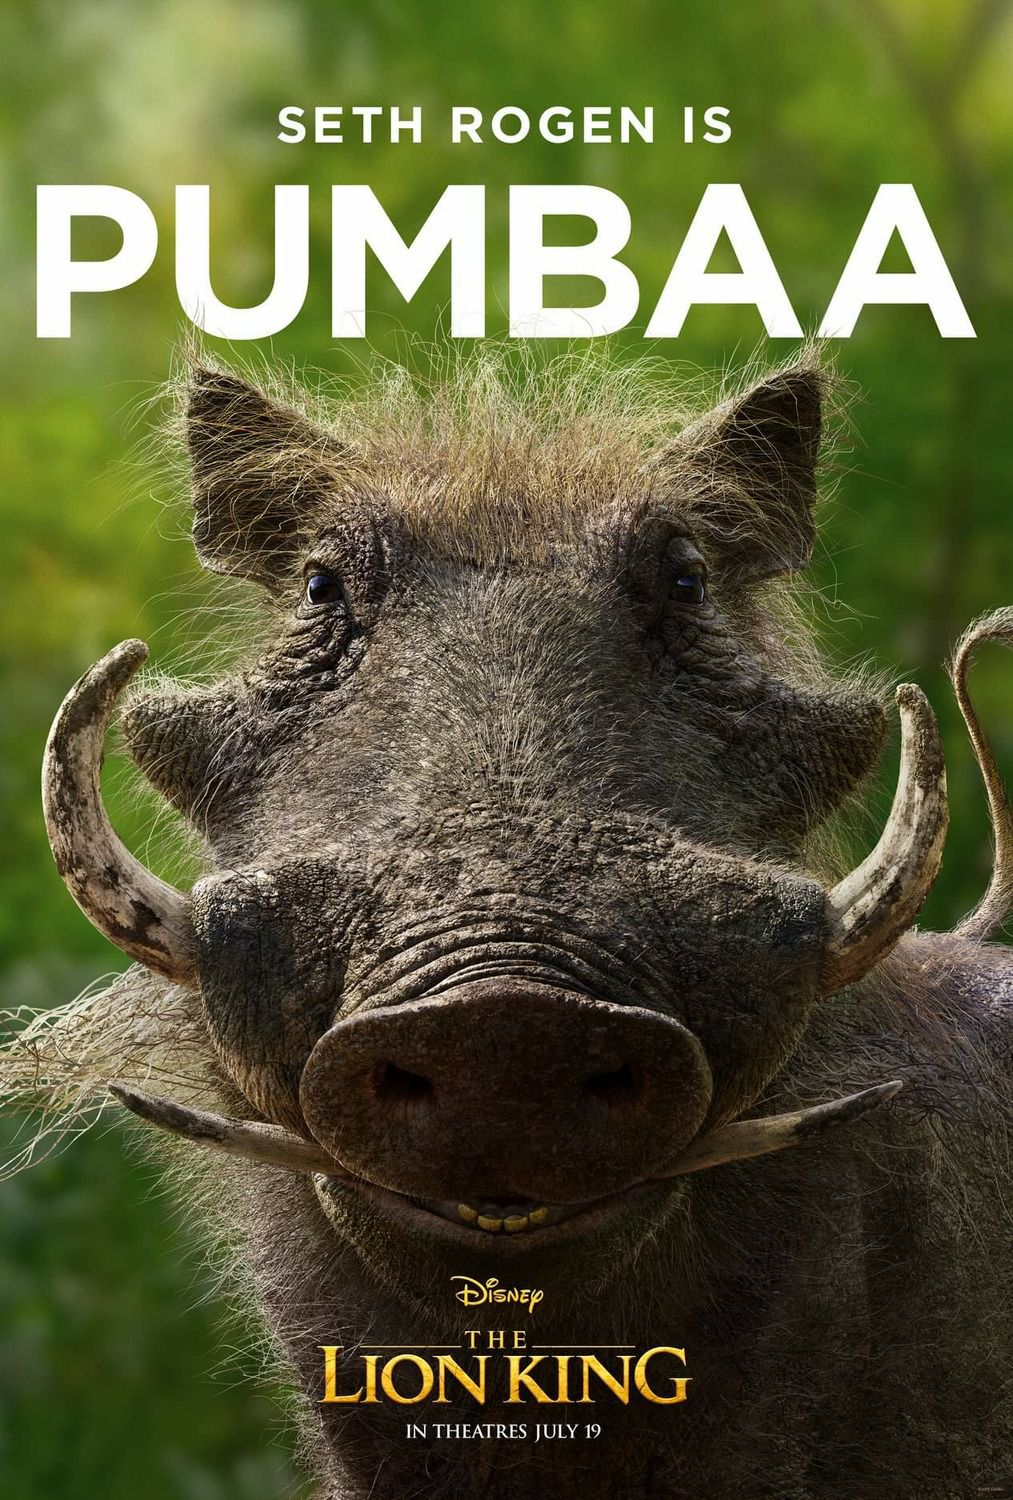 Seth Rogen is Pumbaa